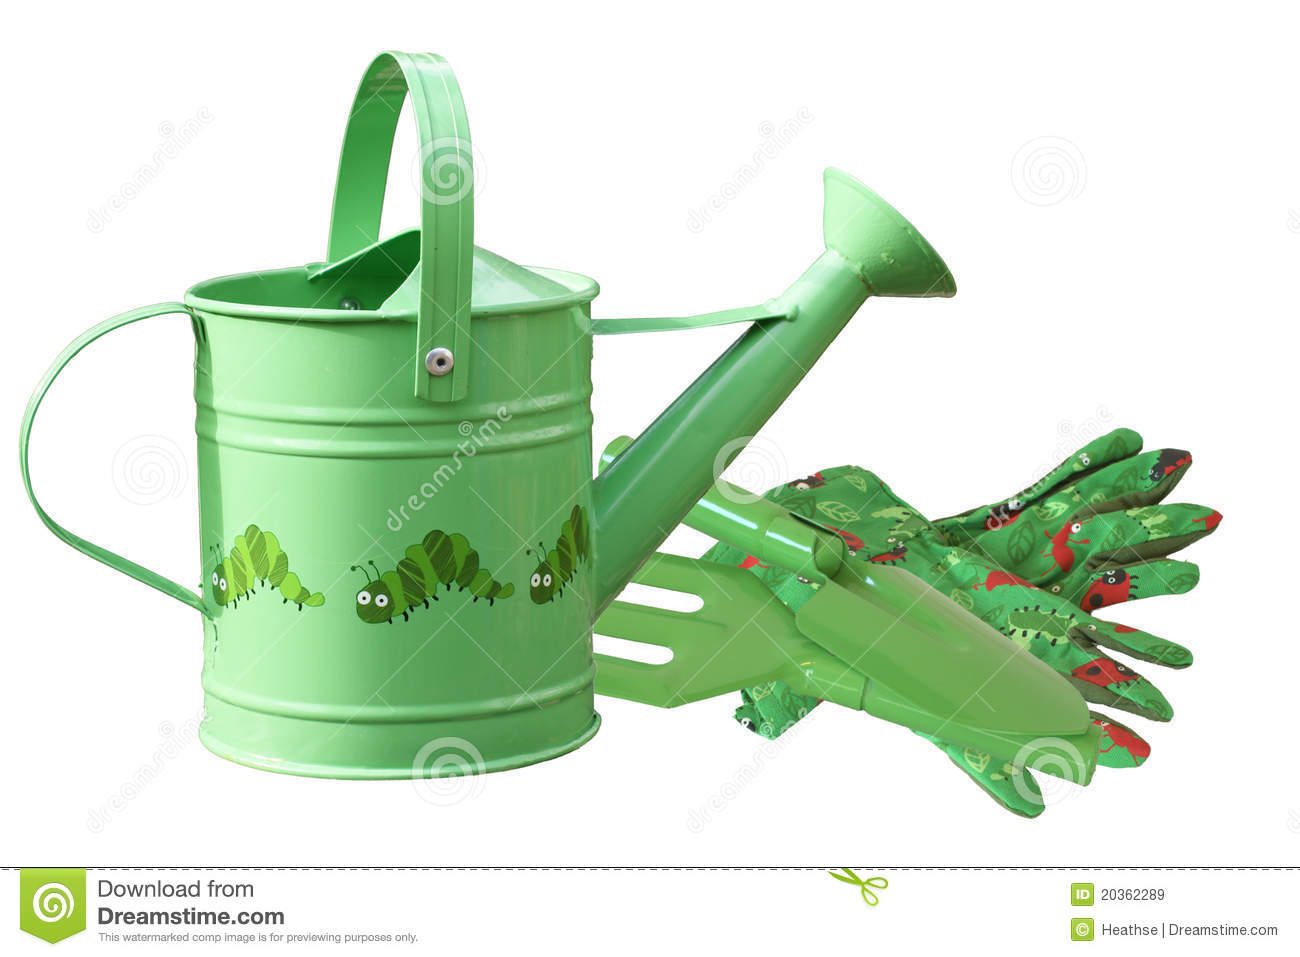 Childrens gardening tools royalty free stock images for Childrens gardening tools